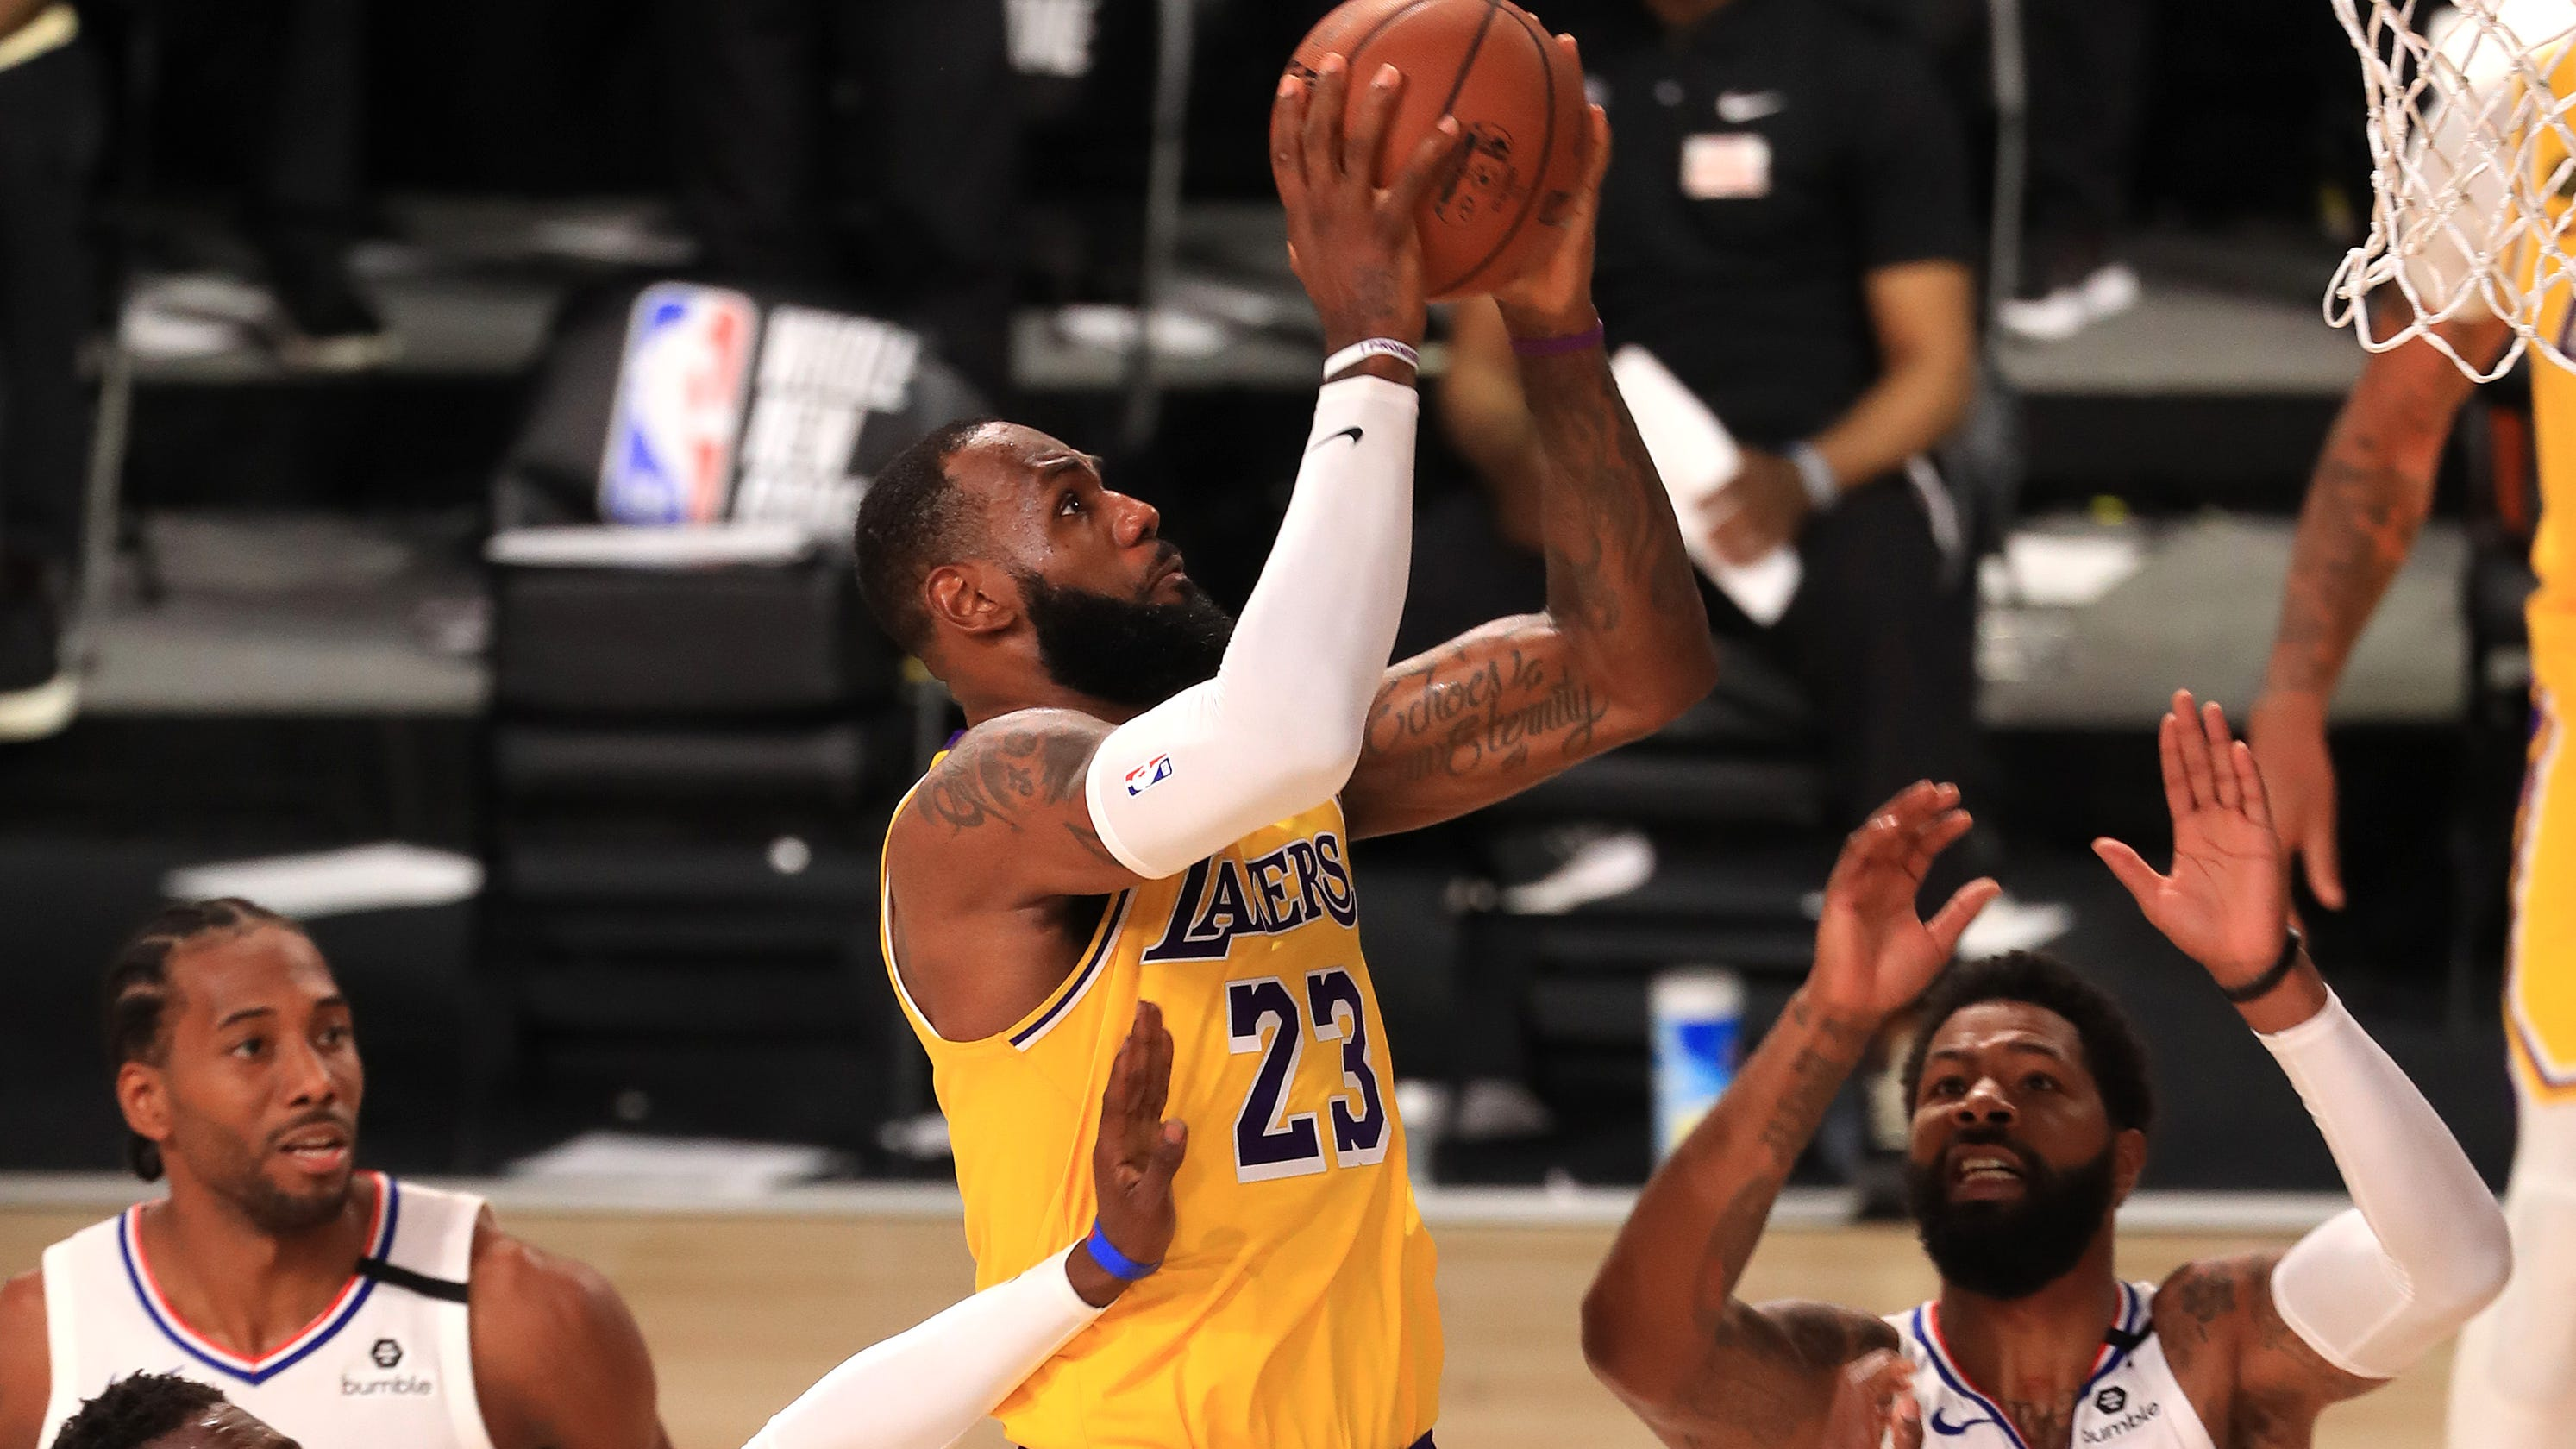 LeBron James lifts Lakers to victory over Clippers with clutch basket